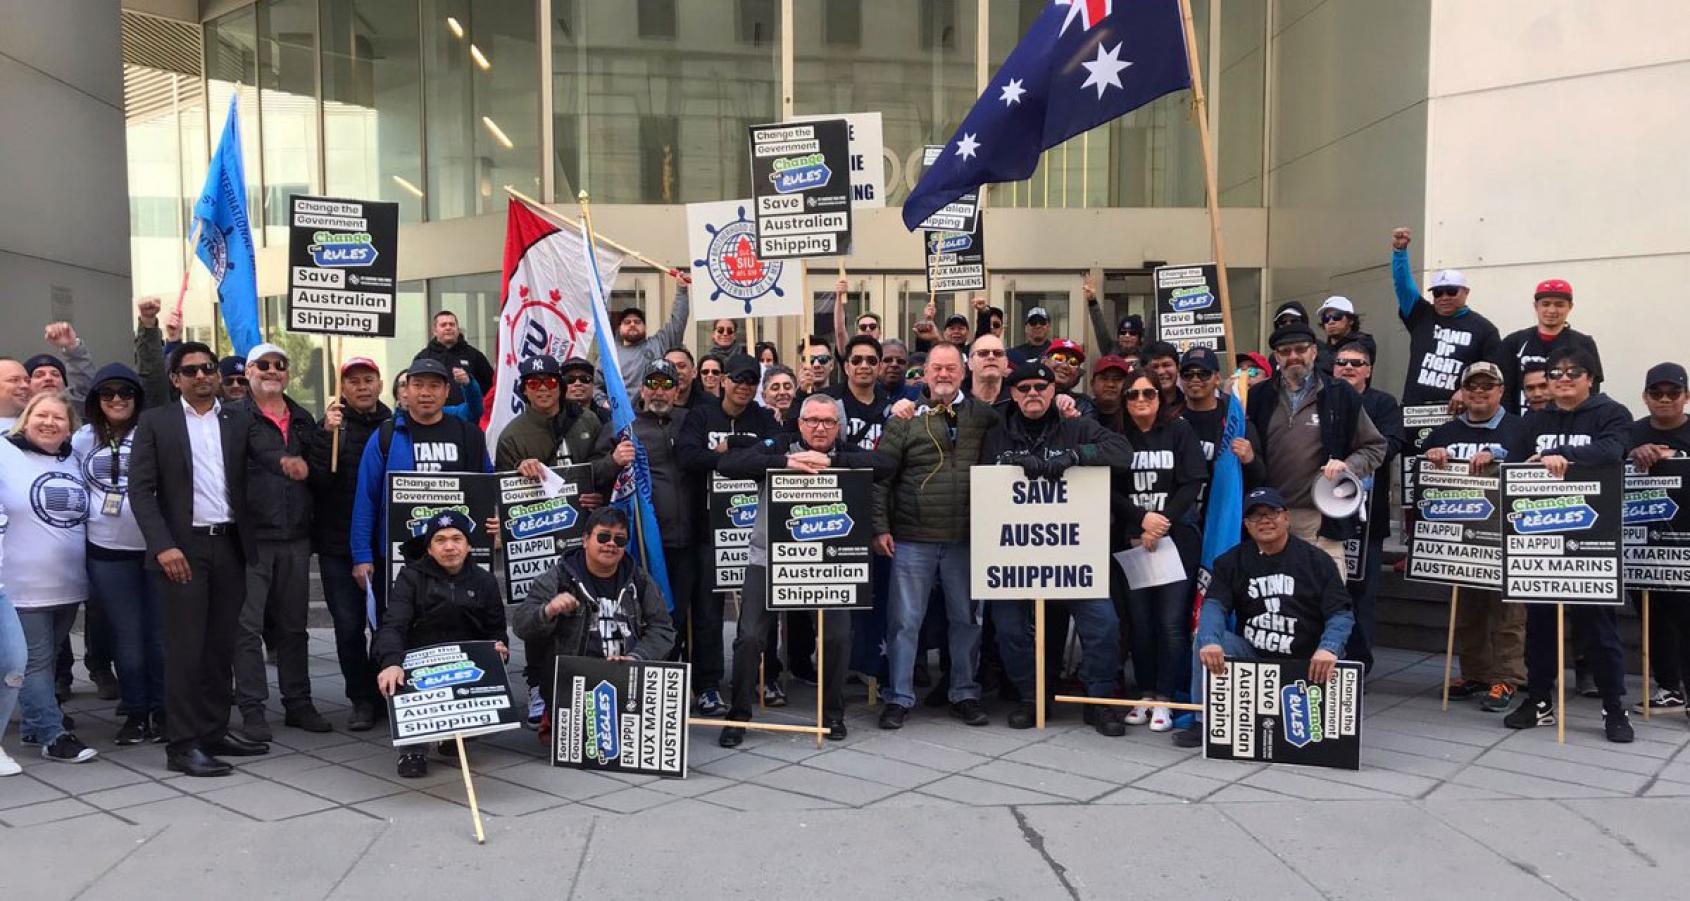 Maritime workers rally globally to 'save Australian shipping' | ITF  Seafarers